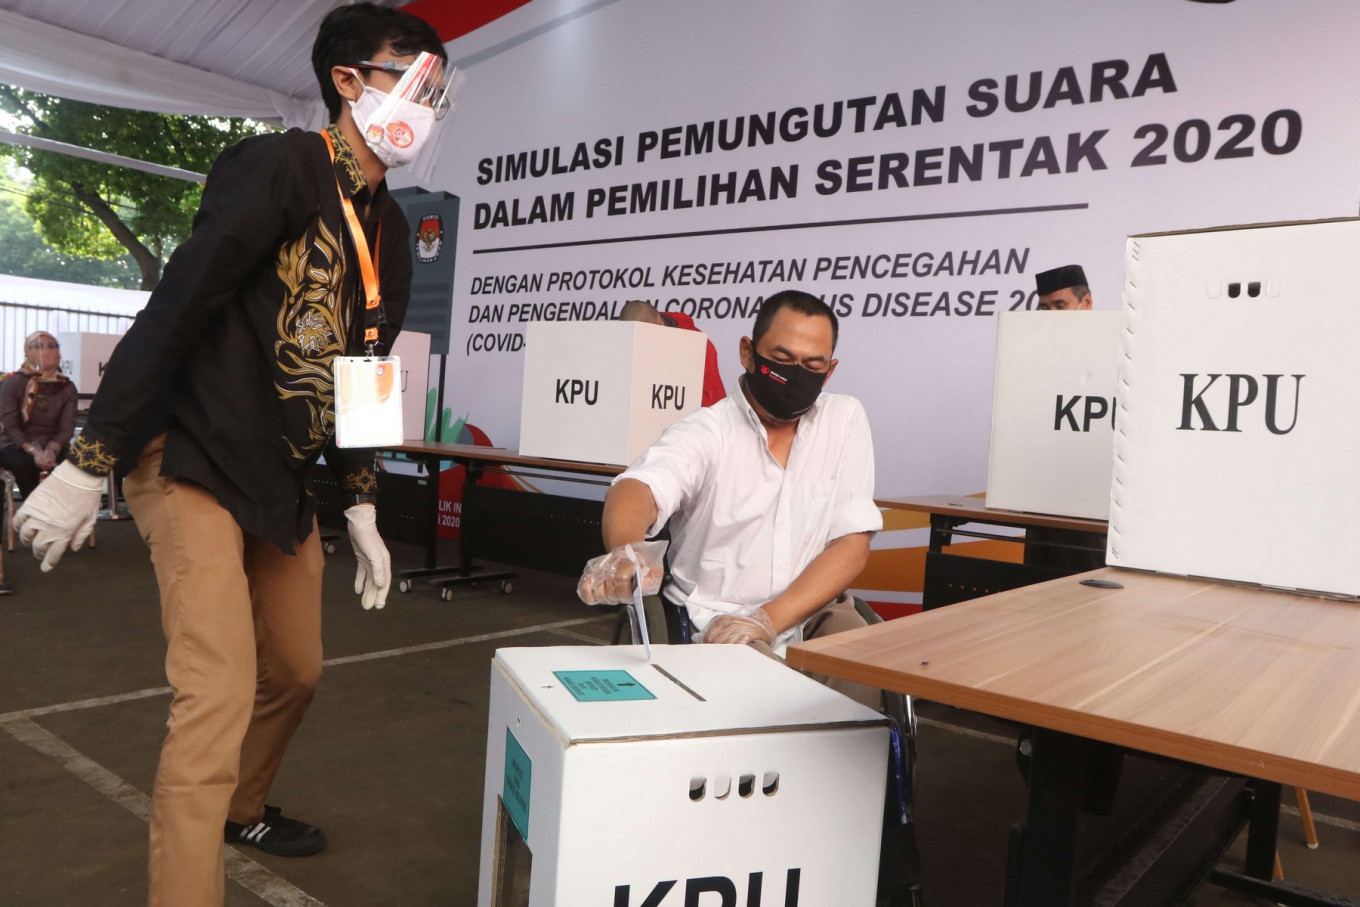 Voter safety a priority during 2020 elections, Jokowi says